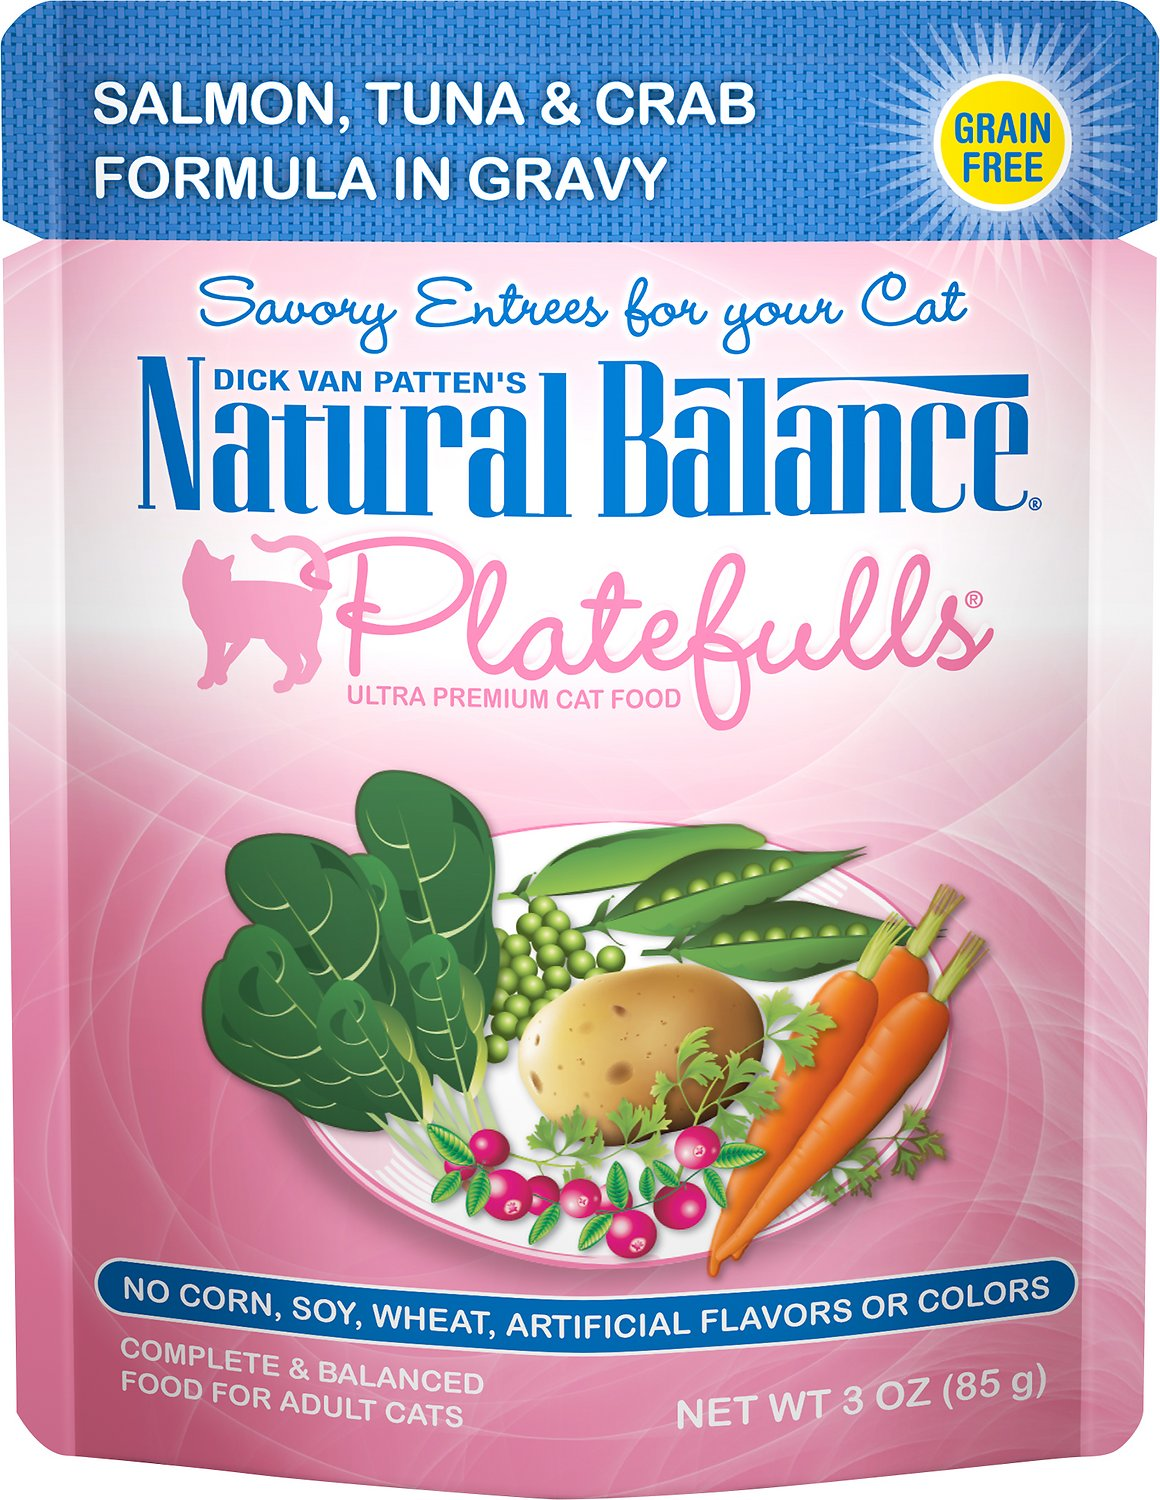 Natural Balance Platefulls Salmon, Tuna & Crab Formula in Gravy Grain-Free Cat Food Pouches, 3-oz pouch